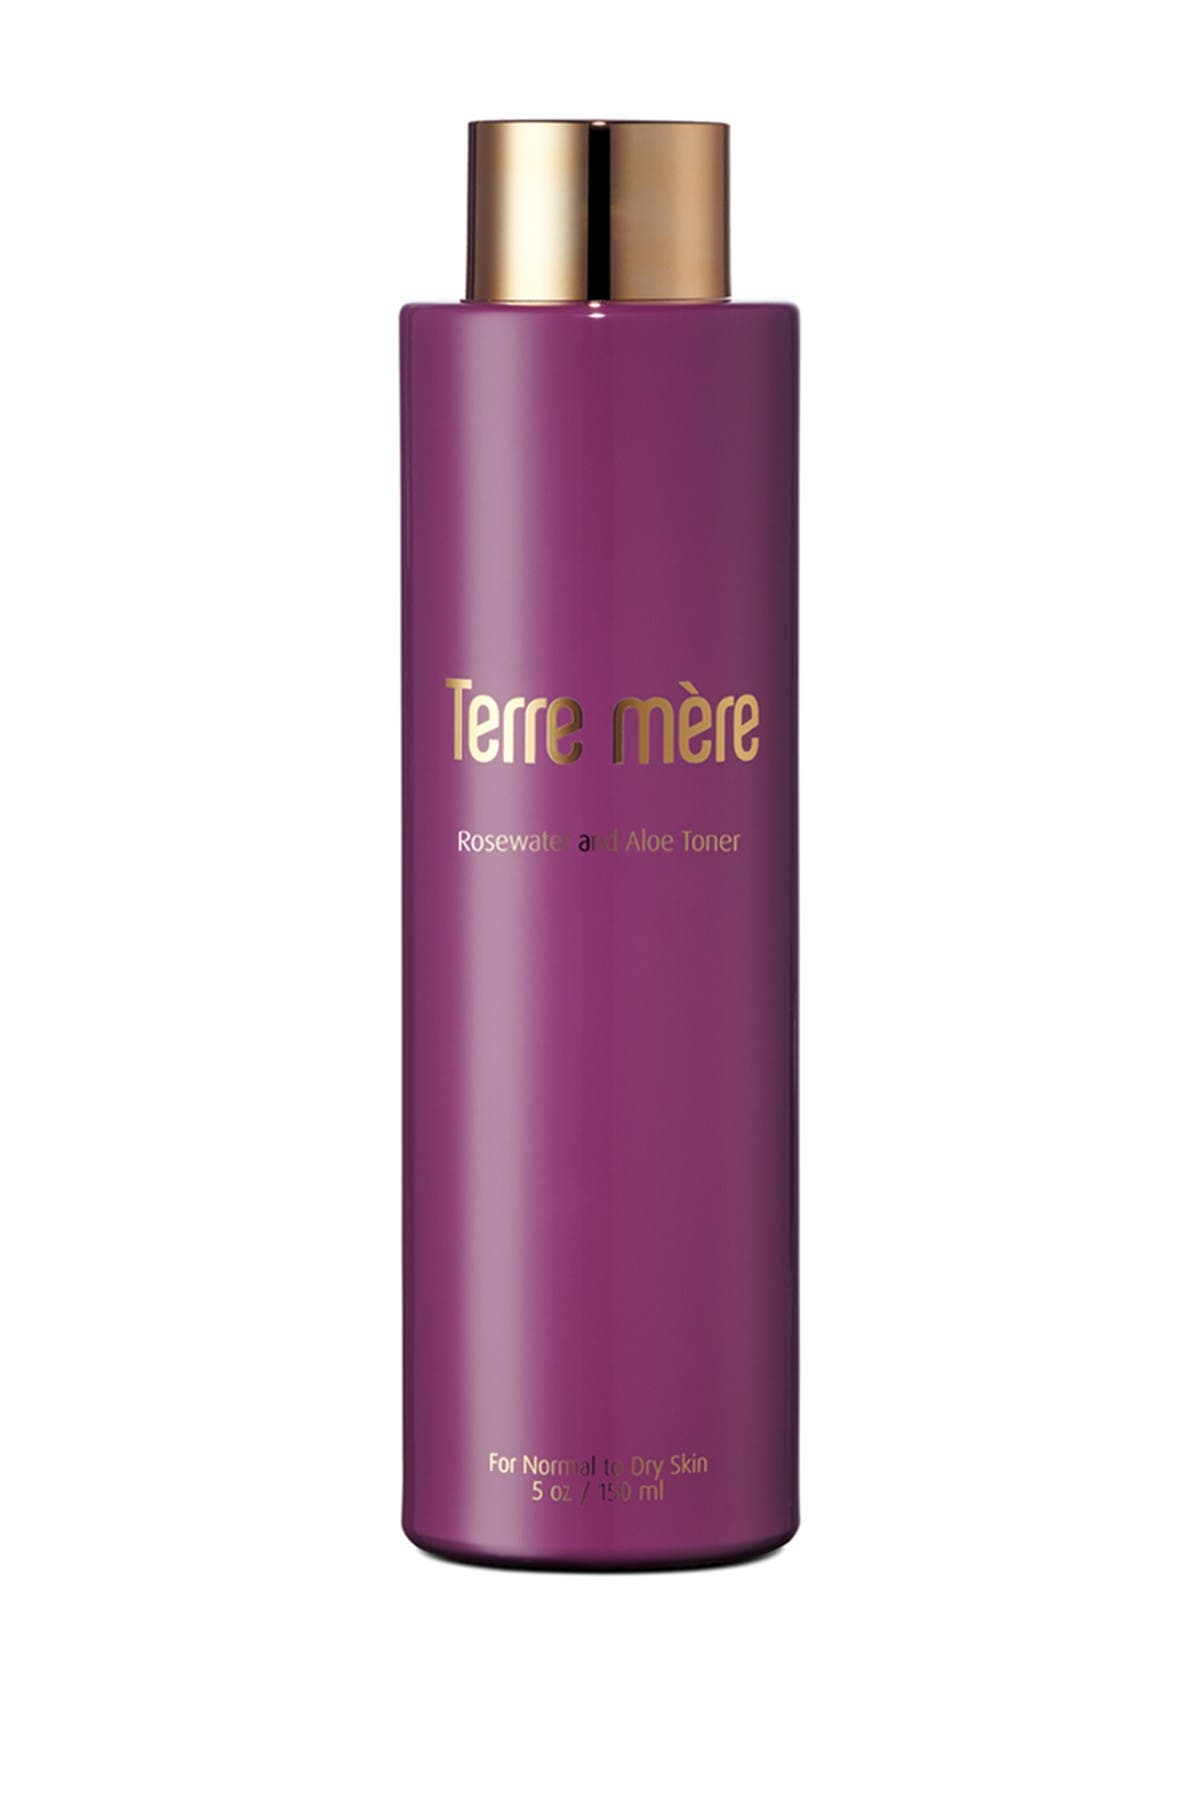 Image of Terre Mere Rosewater and Aloe Toner - Normal-Dry Skin